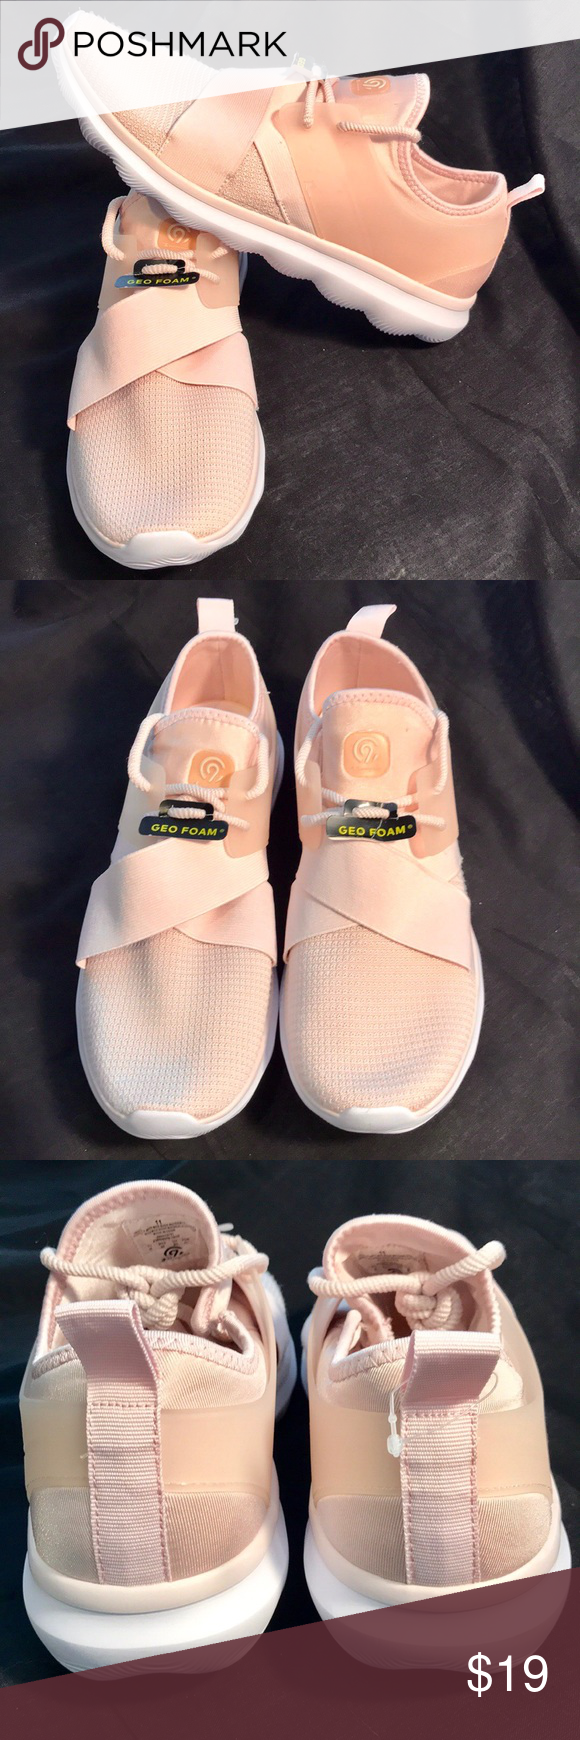 b8256cd7a0f NWT   Champion   Walking Shoe New With Tag   Light Pink with sock-like